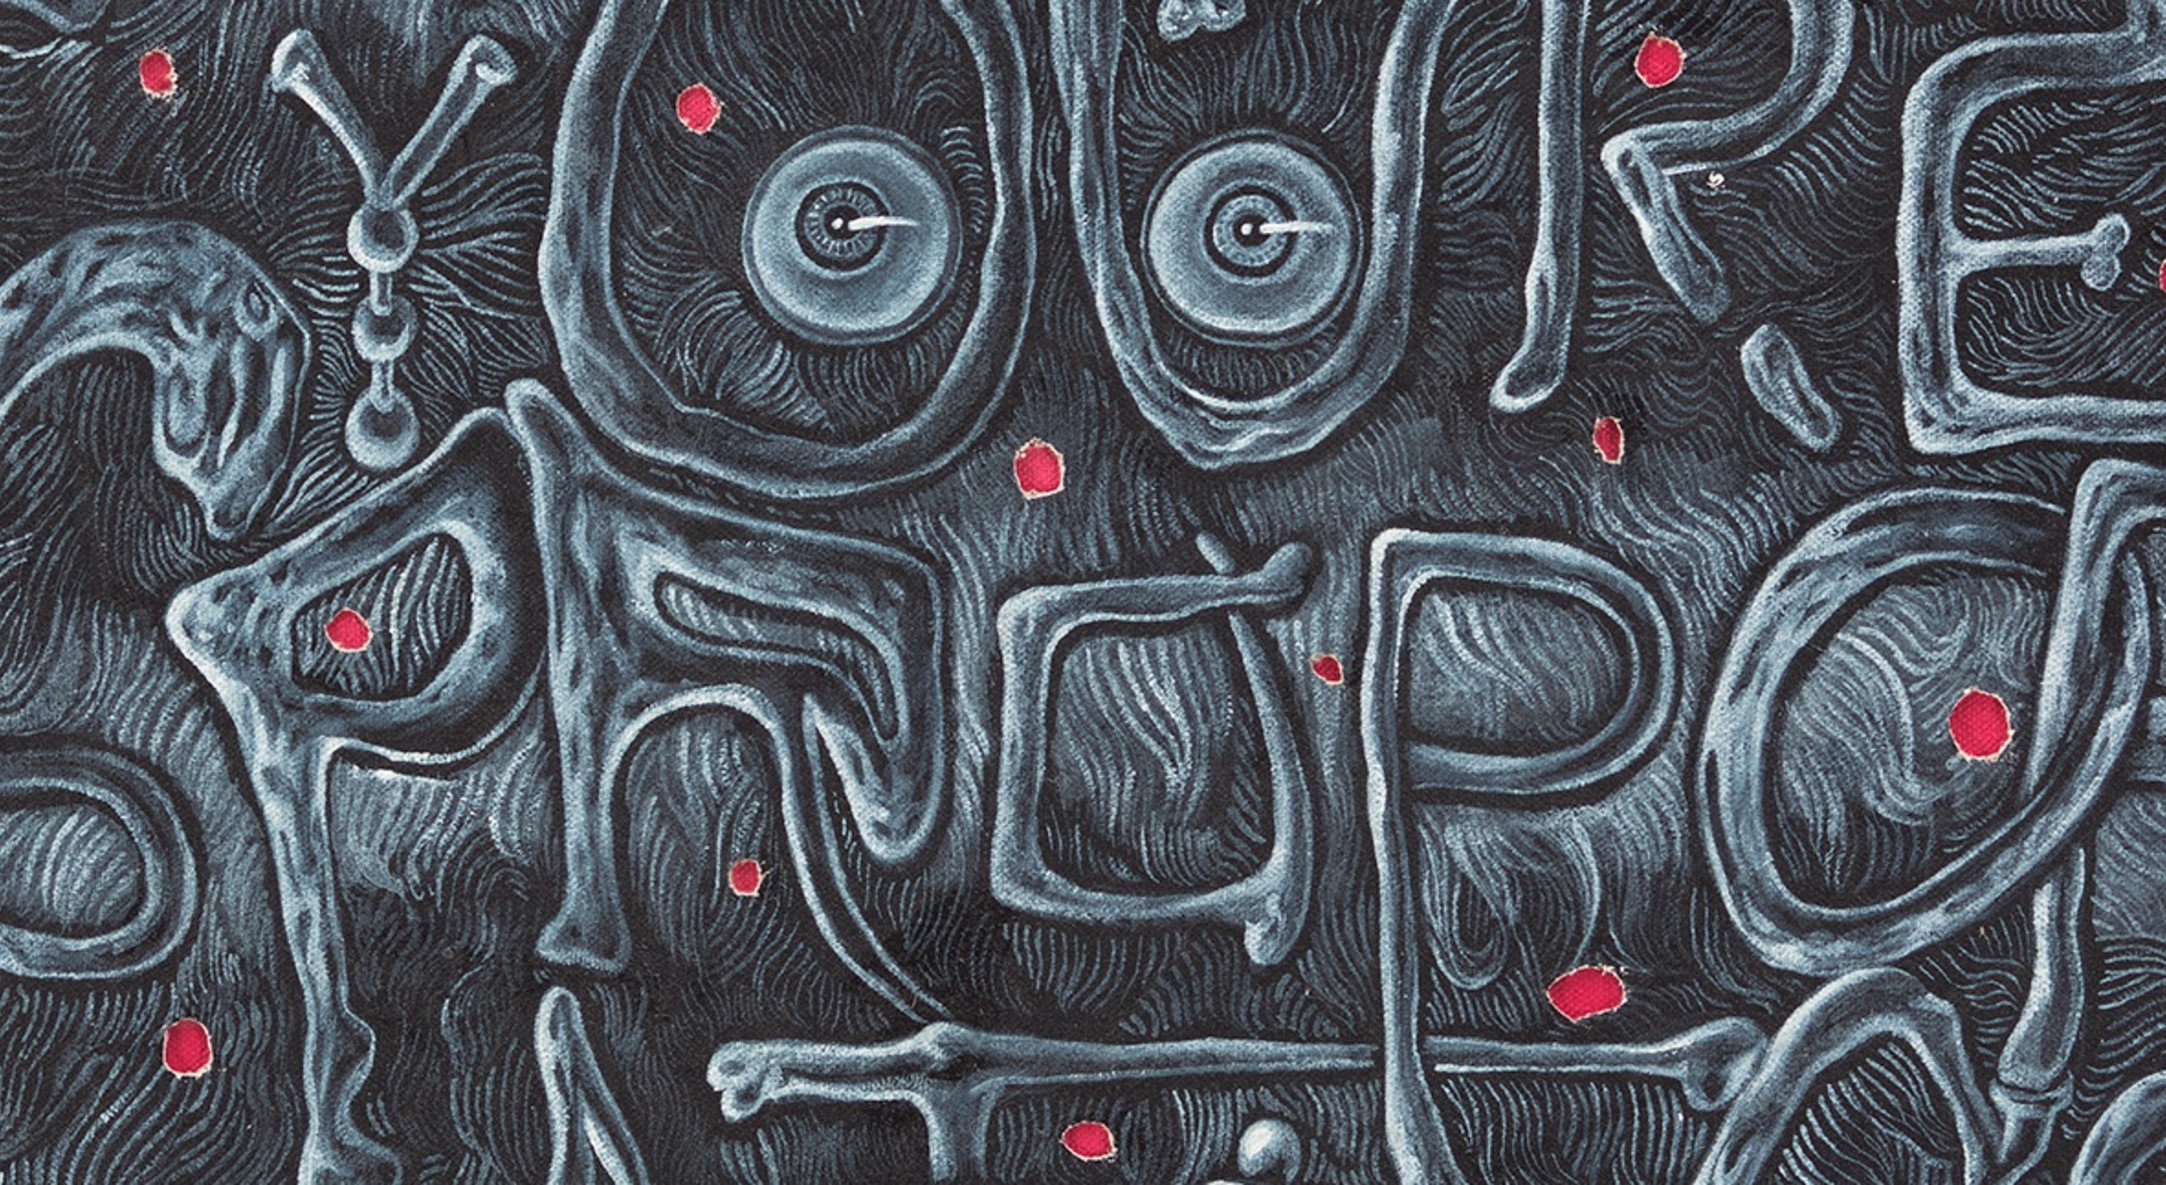 Detail of Trenton Doyle Hancock, You're Unfortunate if You're Disproportionate so Stop Forcing it, 2012, Acrylic and mixed media on canvas, 61 x 61 x 5.1 cm, 24 x 24 x 2 in